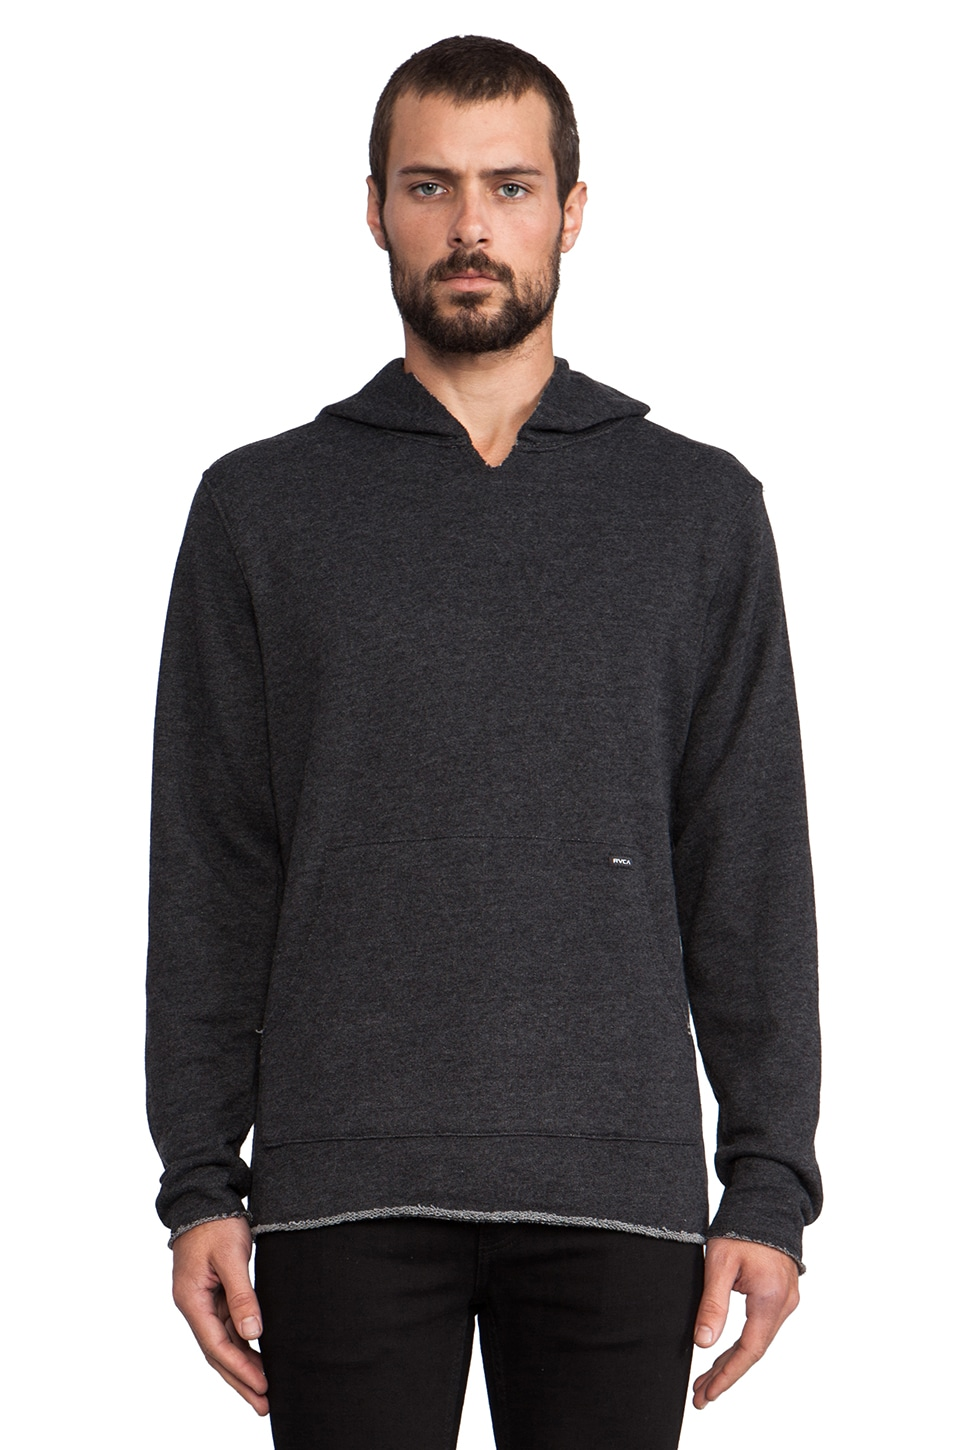 RVCA Dobo Pullover in Black Heather